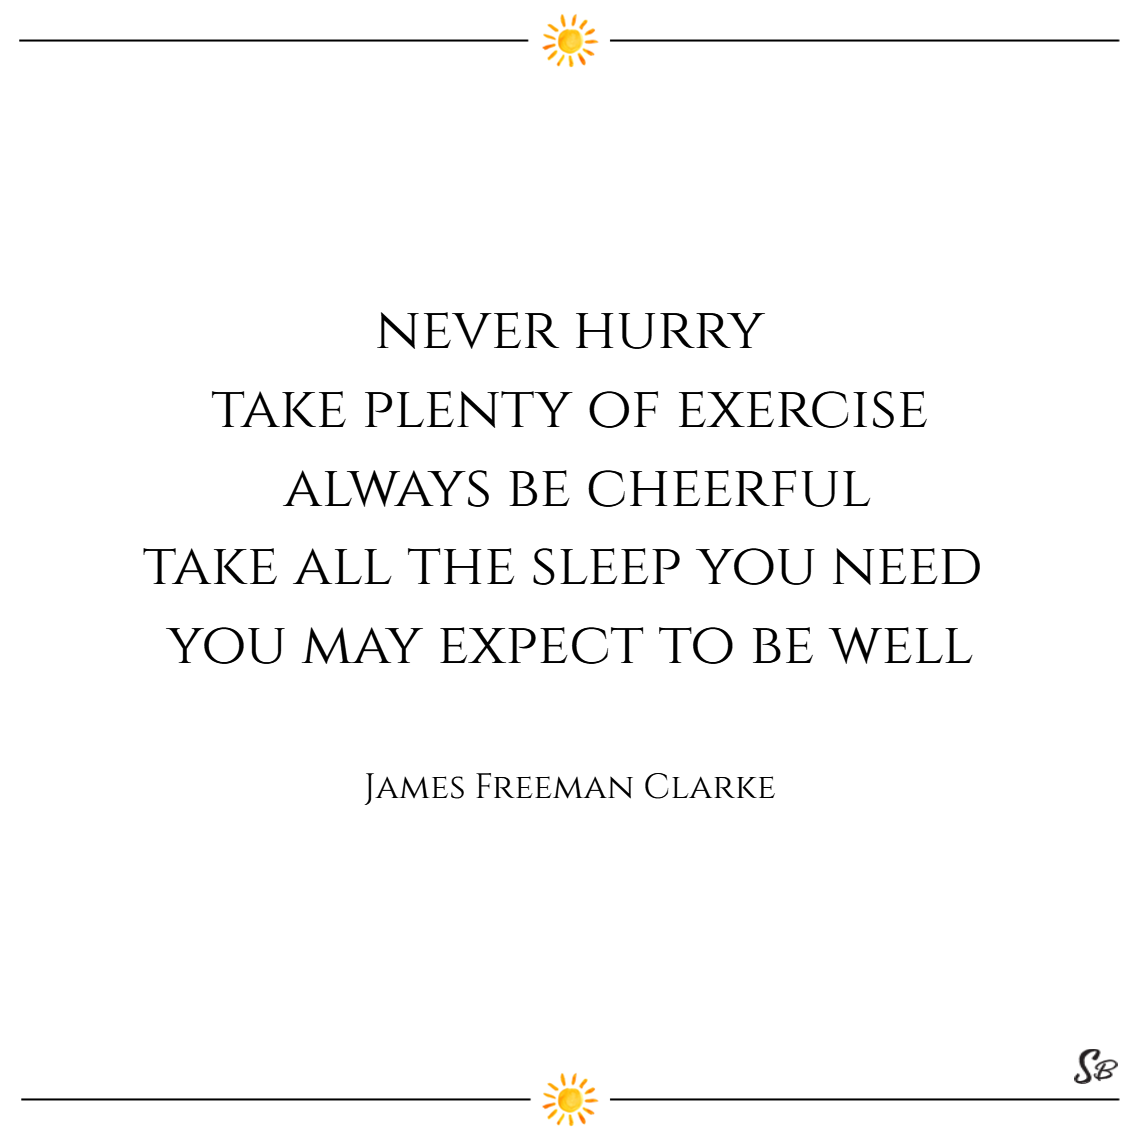 Never hurry. take plenty of exercise. always be cheerful. take all the sleep you need. you may expect to be well. – james freeman clarke